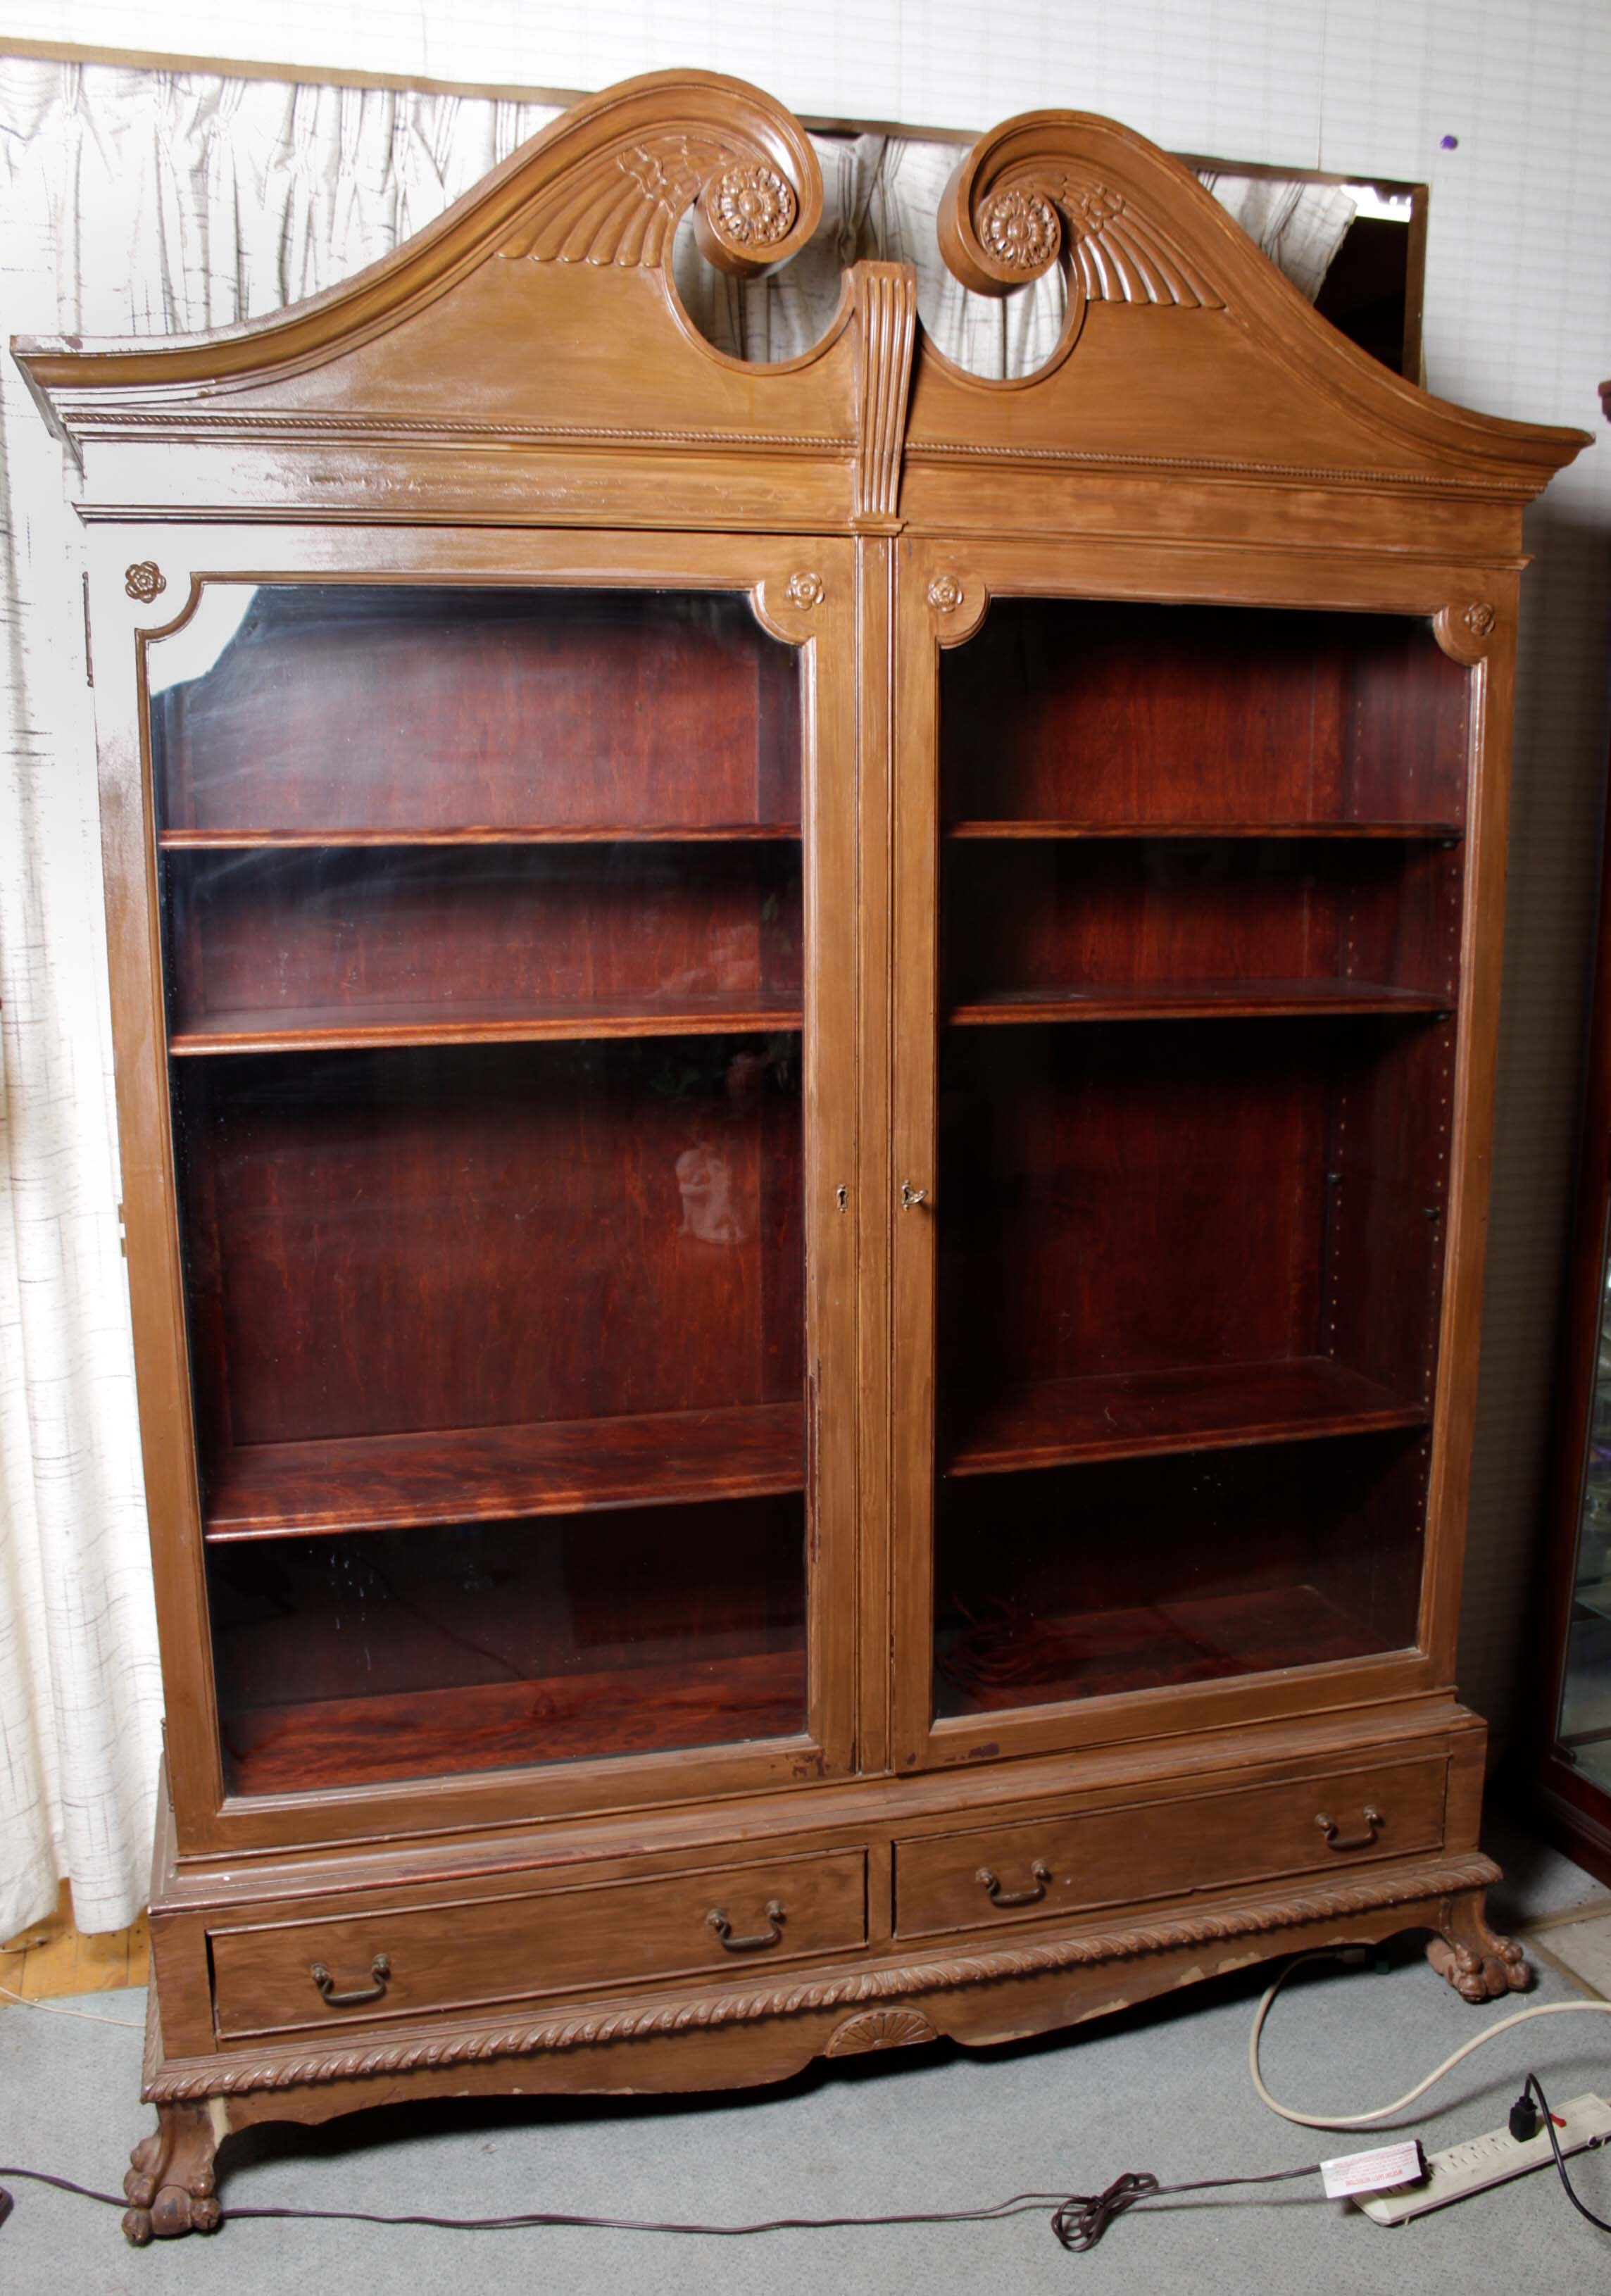 Early 20th Century Paine Furniture Chippendale-Style Display Cabinet